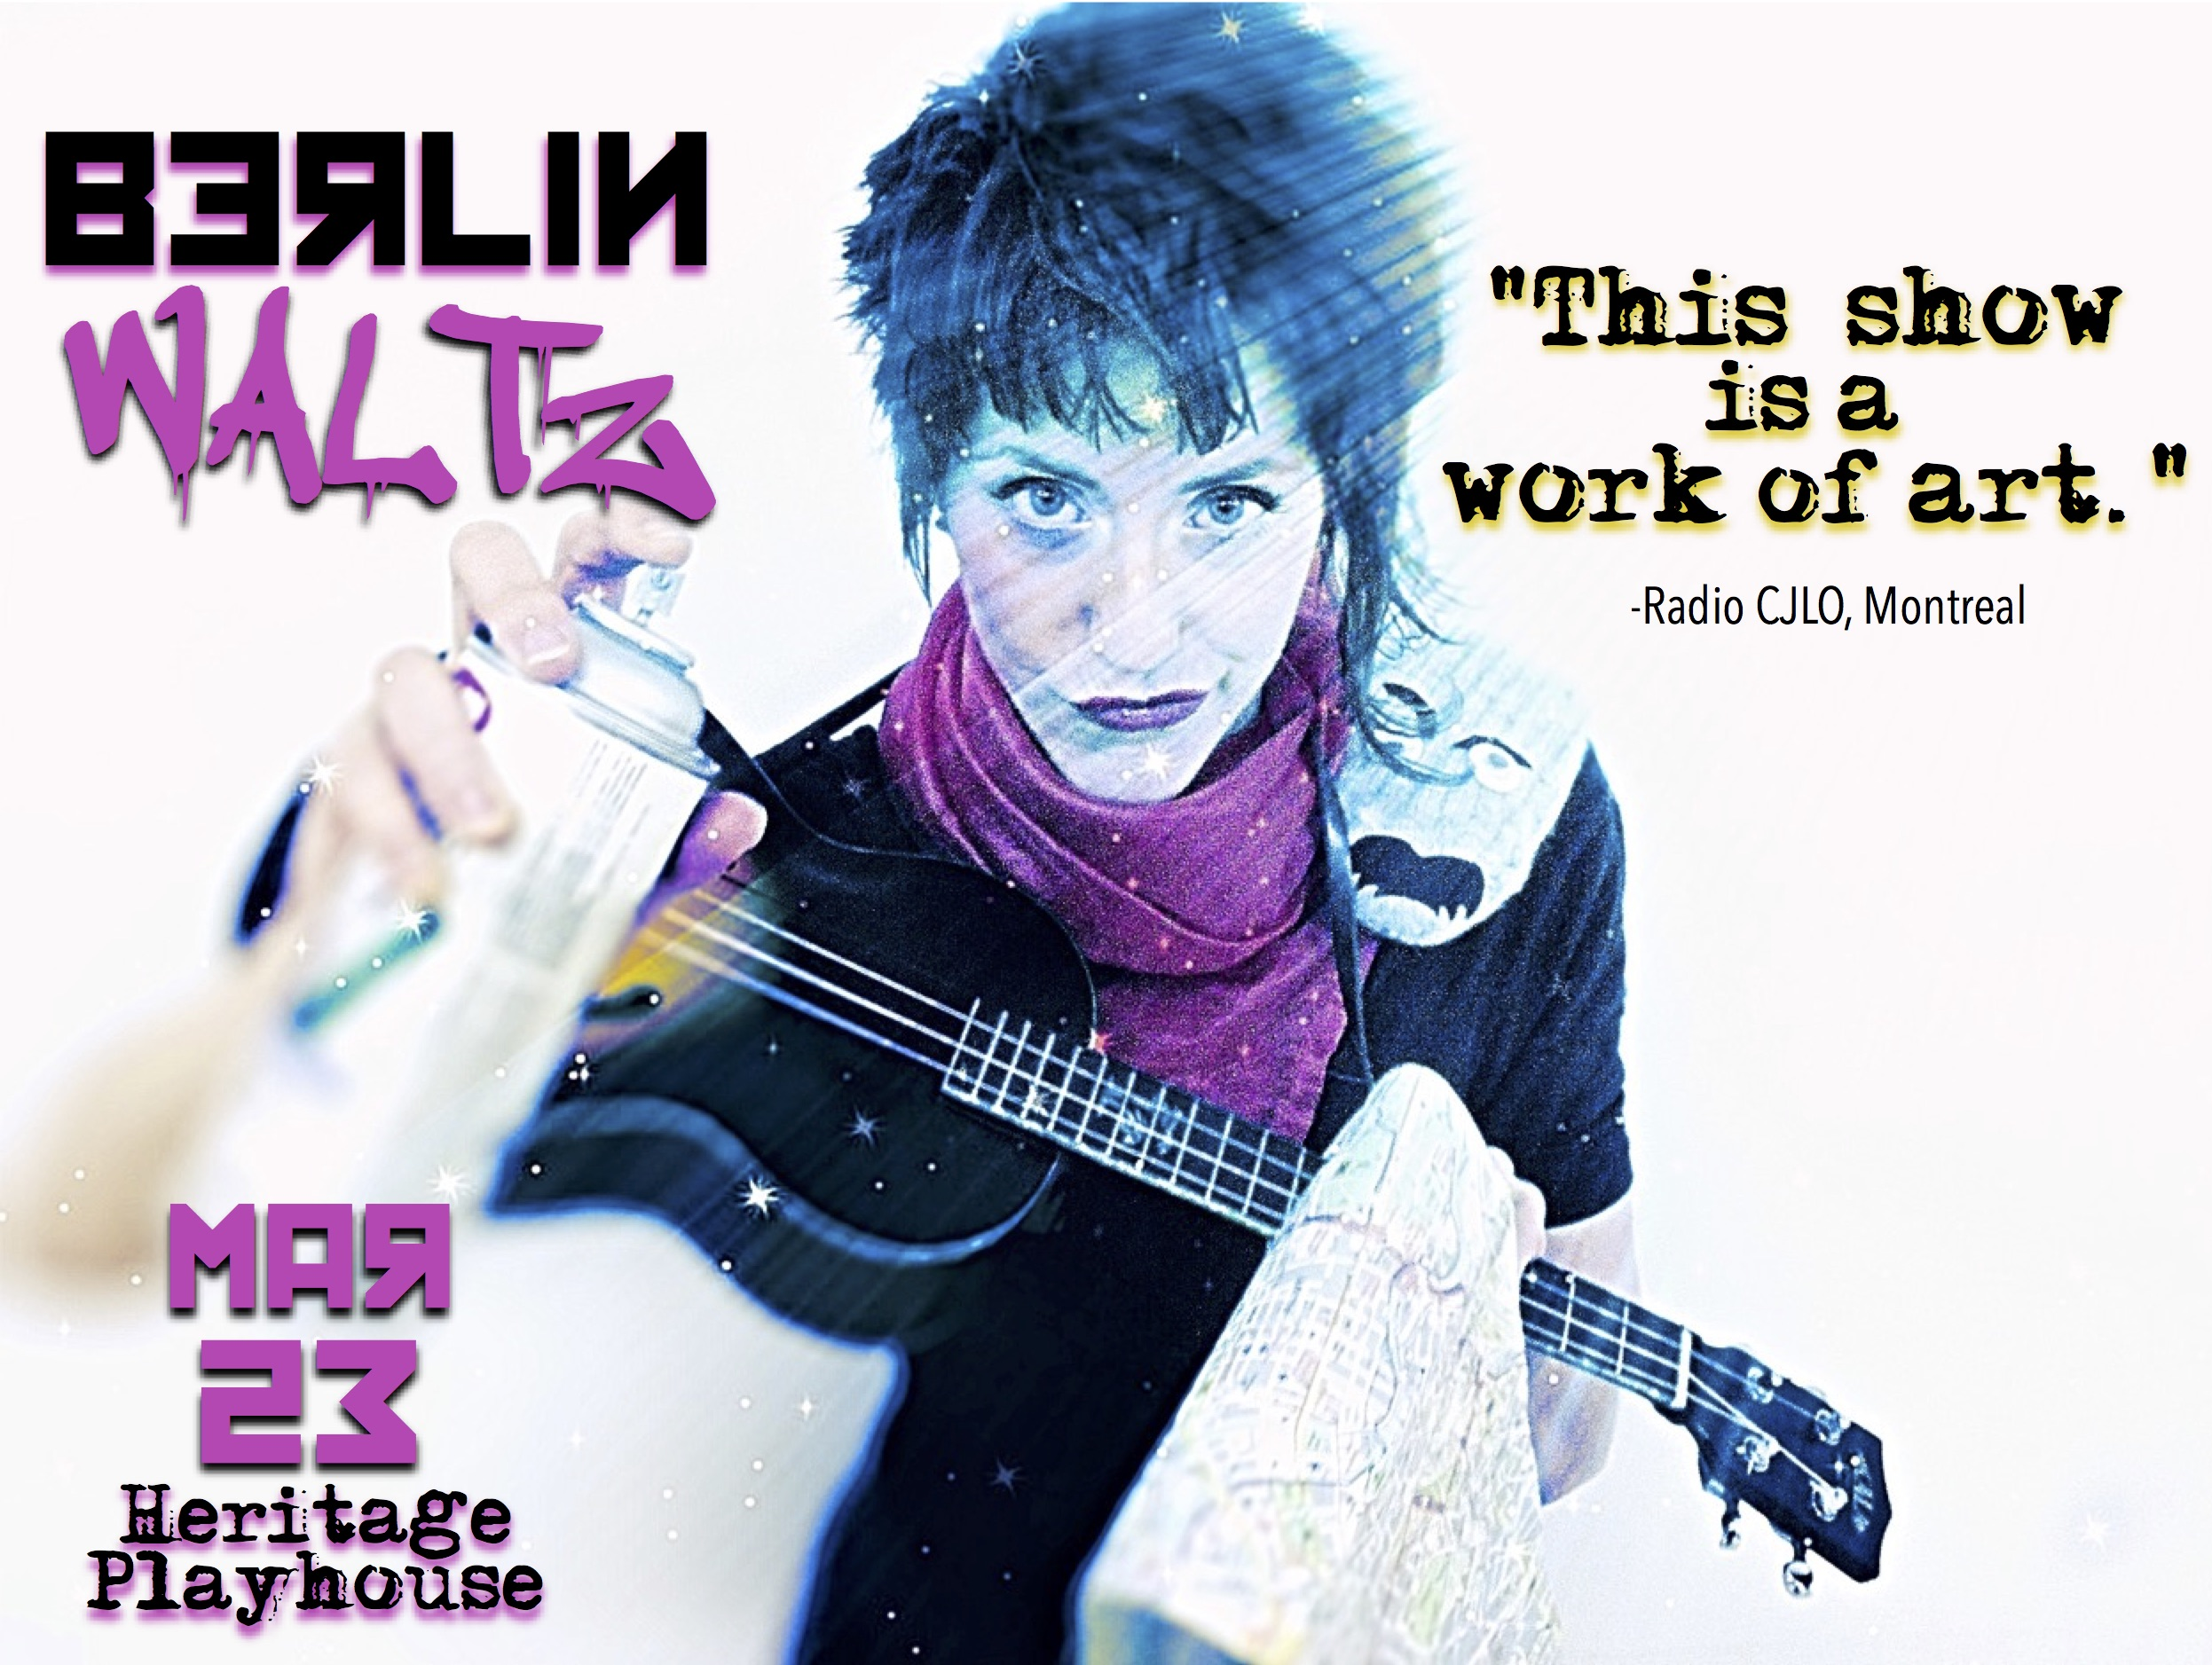 As a    young woman on her bicycle    retraces all    100-miles of the Berlin Wall   , she relives the    history of its Rise and Fall    and builds her own hypnotic    Wall of Sound    using a strange arrangement of musical instruments...